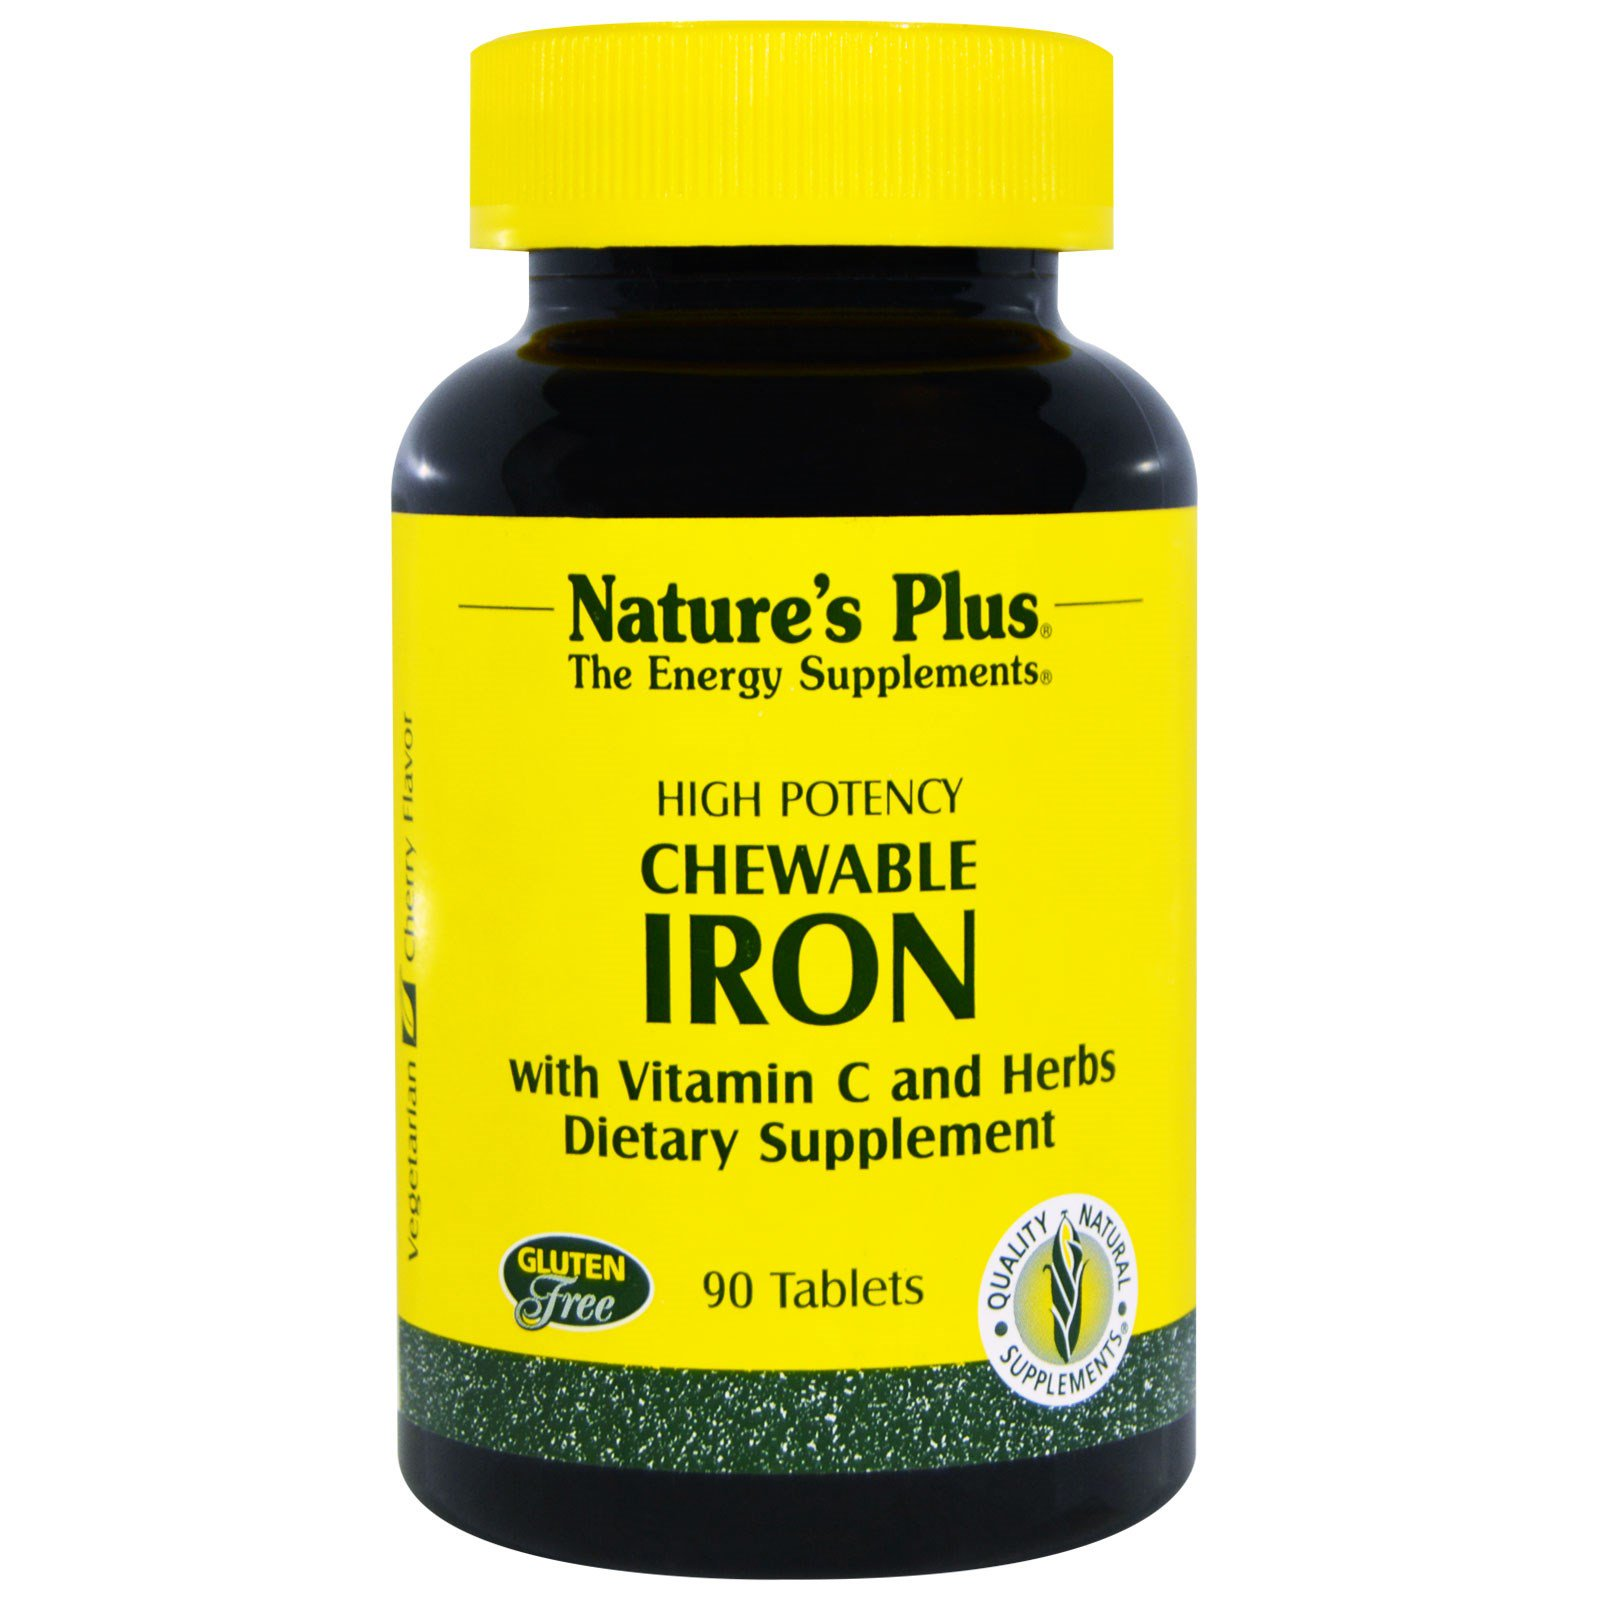 Image of Chewable Iron, Cherry Flavor (90 Tablets) - Nature's Plus 0097467034211